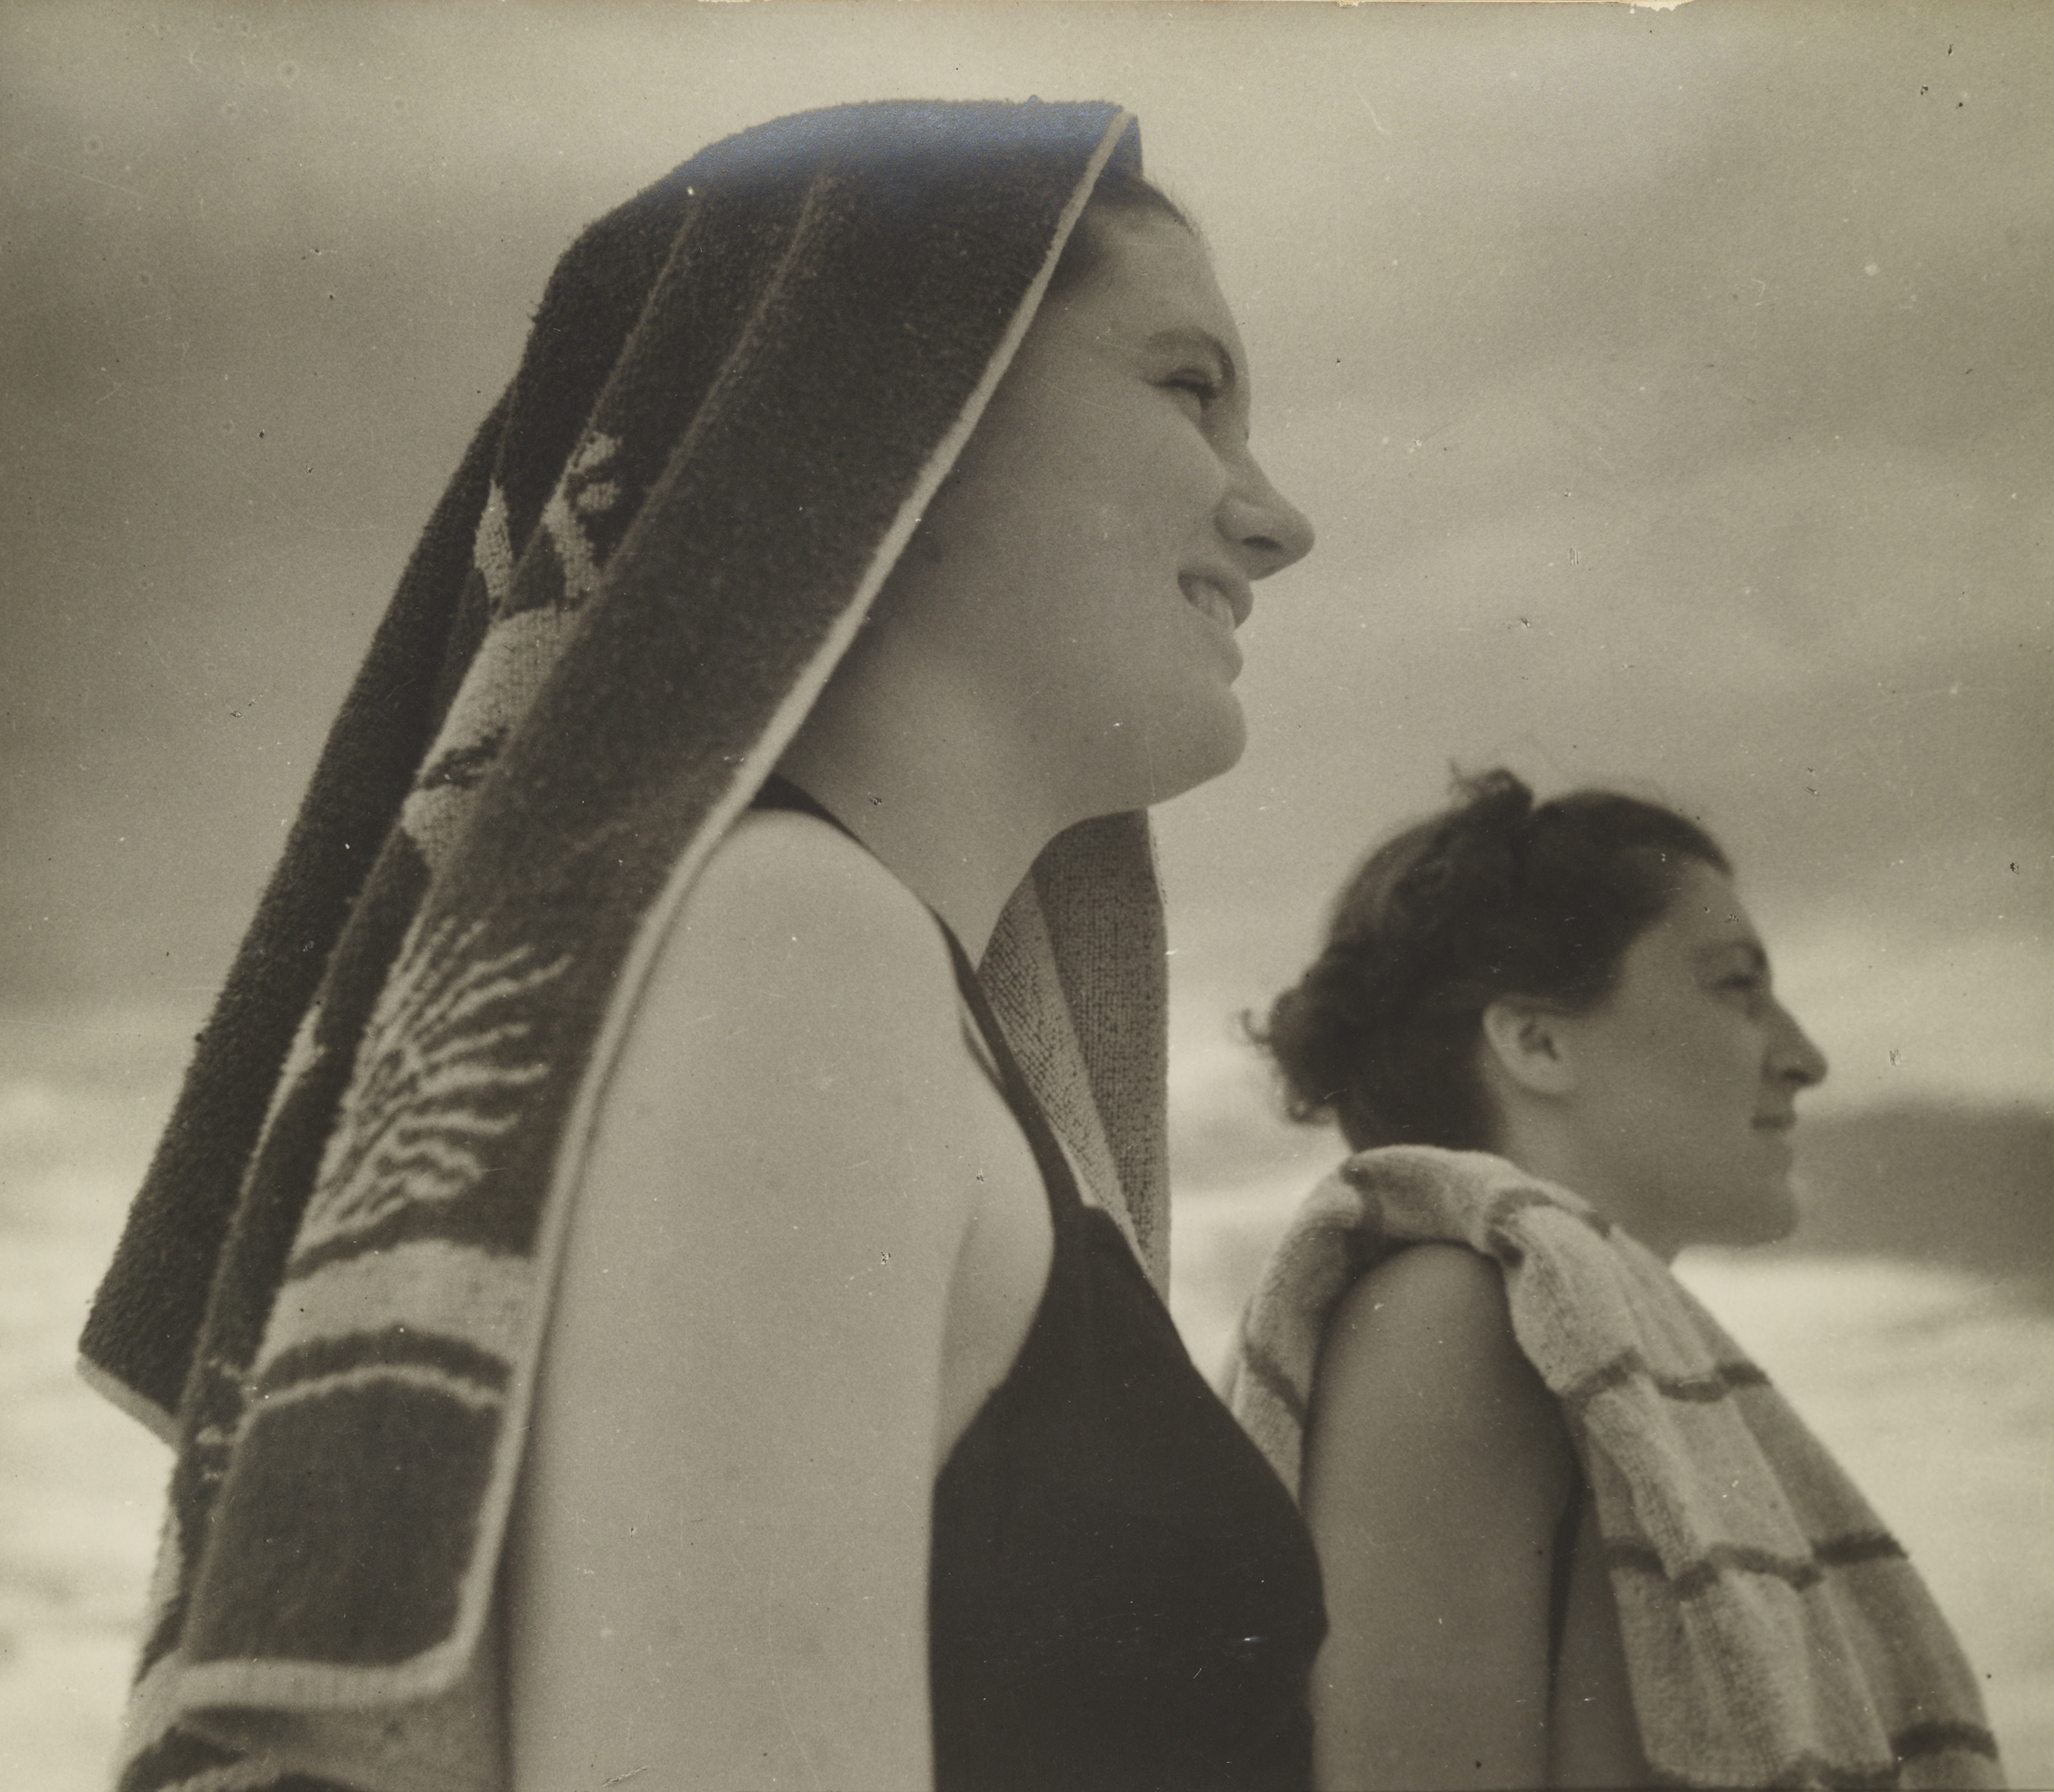 A sepia photograph of two women standing side by side in profile. The woman in the foreground has beach towel draped over her head.